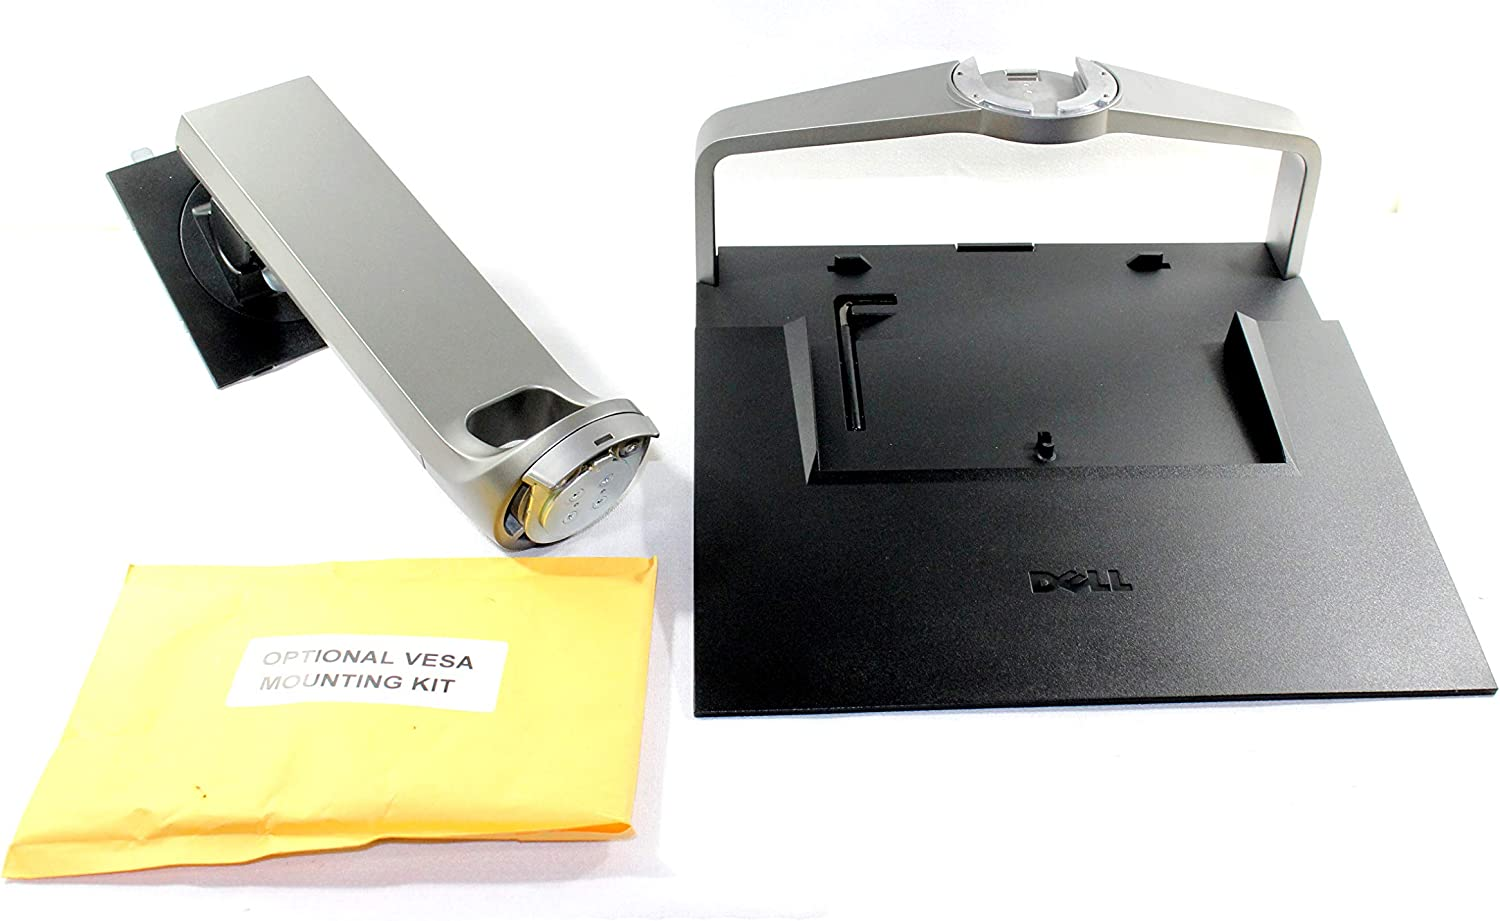 Genuine DELL 330-0874, R427C, RM361, T545C, M520M E-FPM Monitor Stand and Laptop Notebook Dock For Dell Latitude E4200, E4300, E5400, E5500, E6400 / 6400ATG, E6500 E-Family Laptops and Precision M2400, M4400, M6400 Mobile Workstations